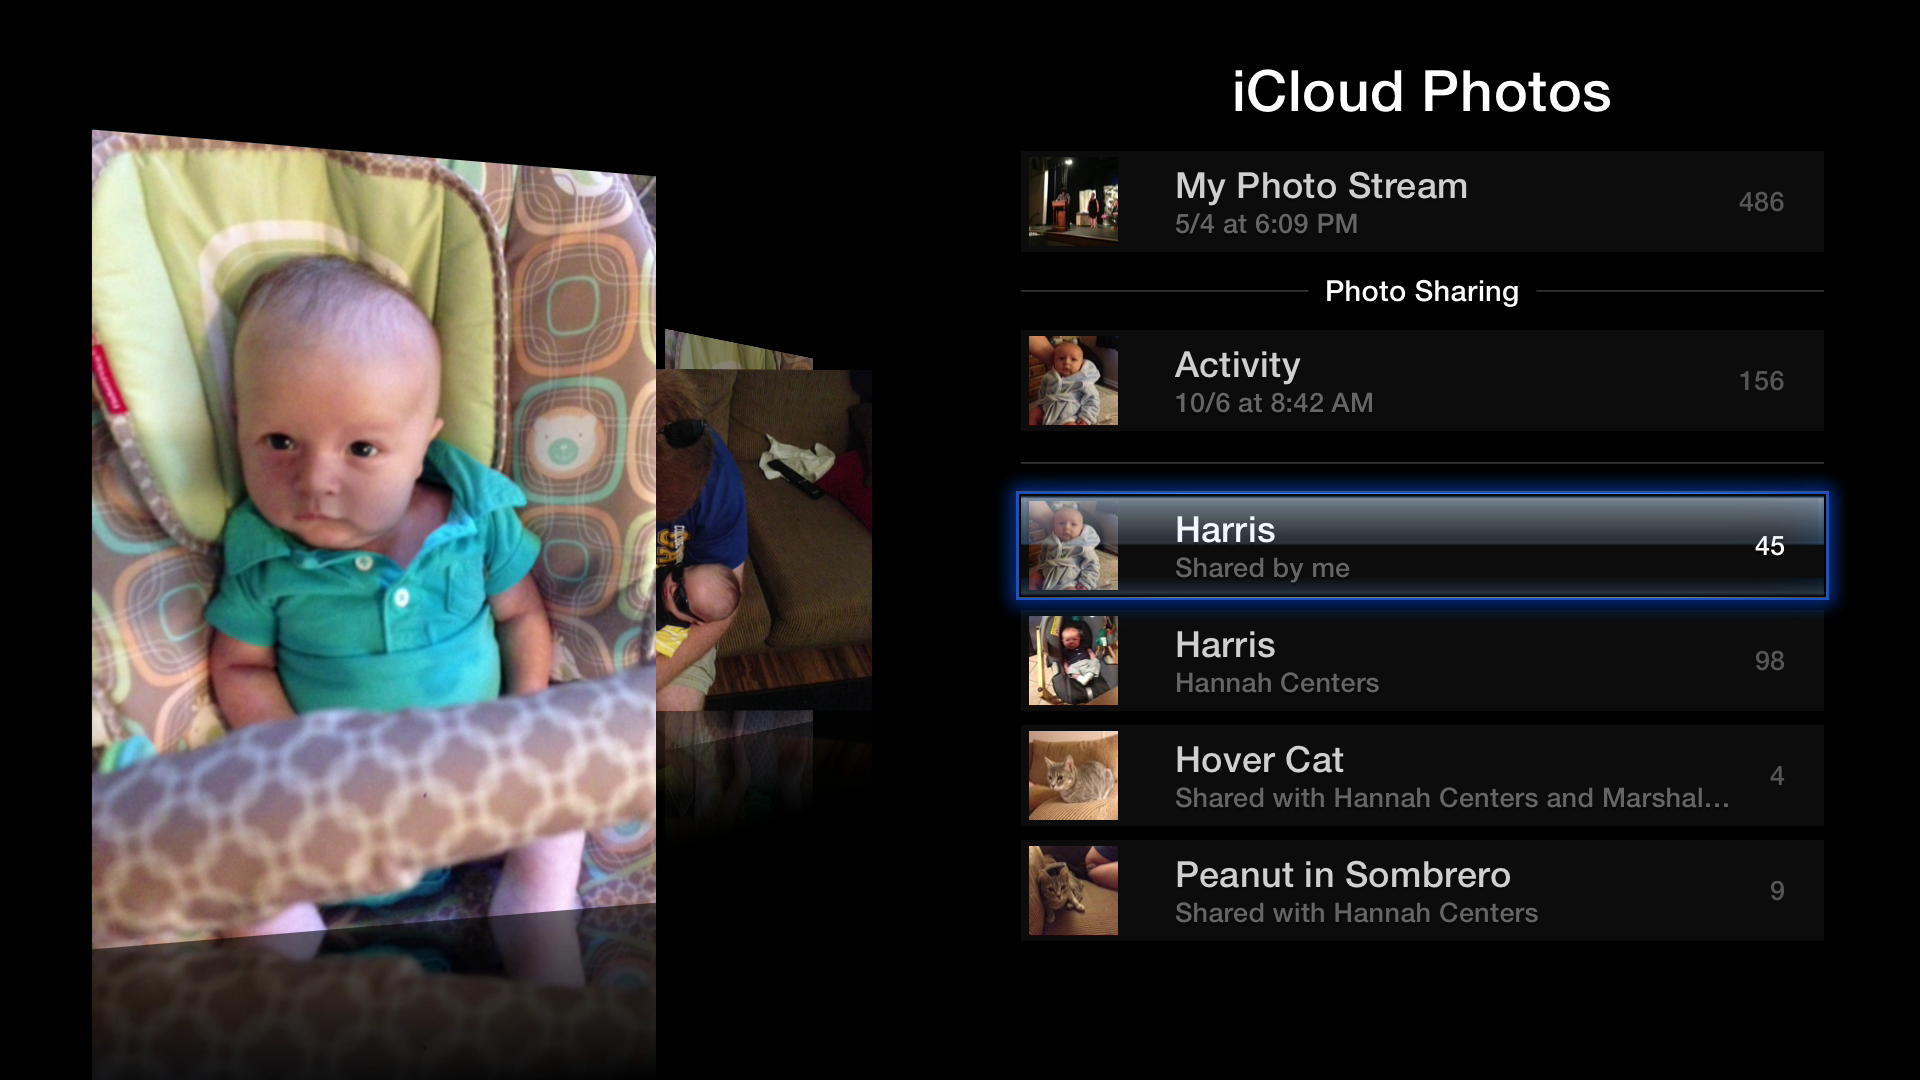 Figure 1: iCloud Photos lets you view your My Photo Stream and shared albums. In this image, a shared album is highlighted.